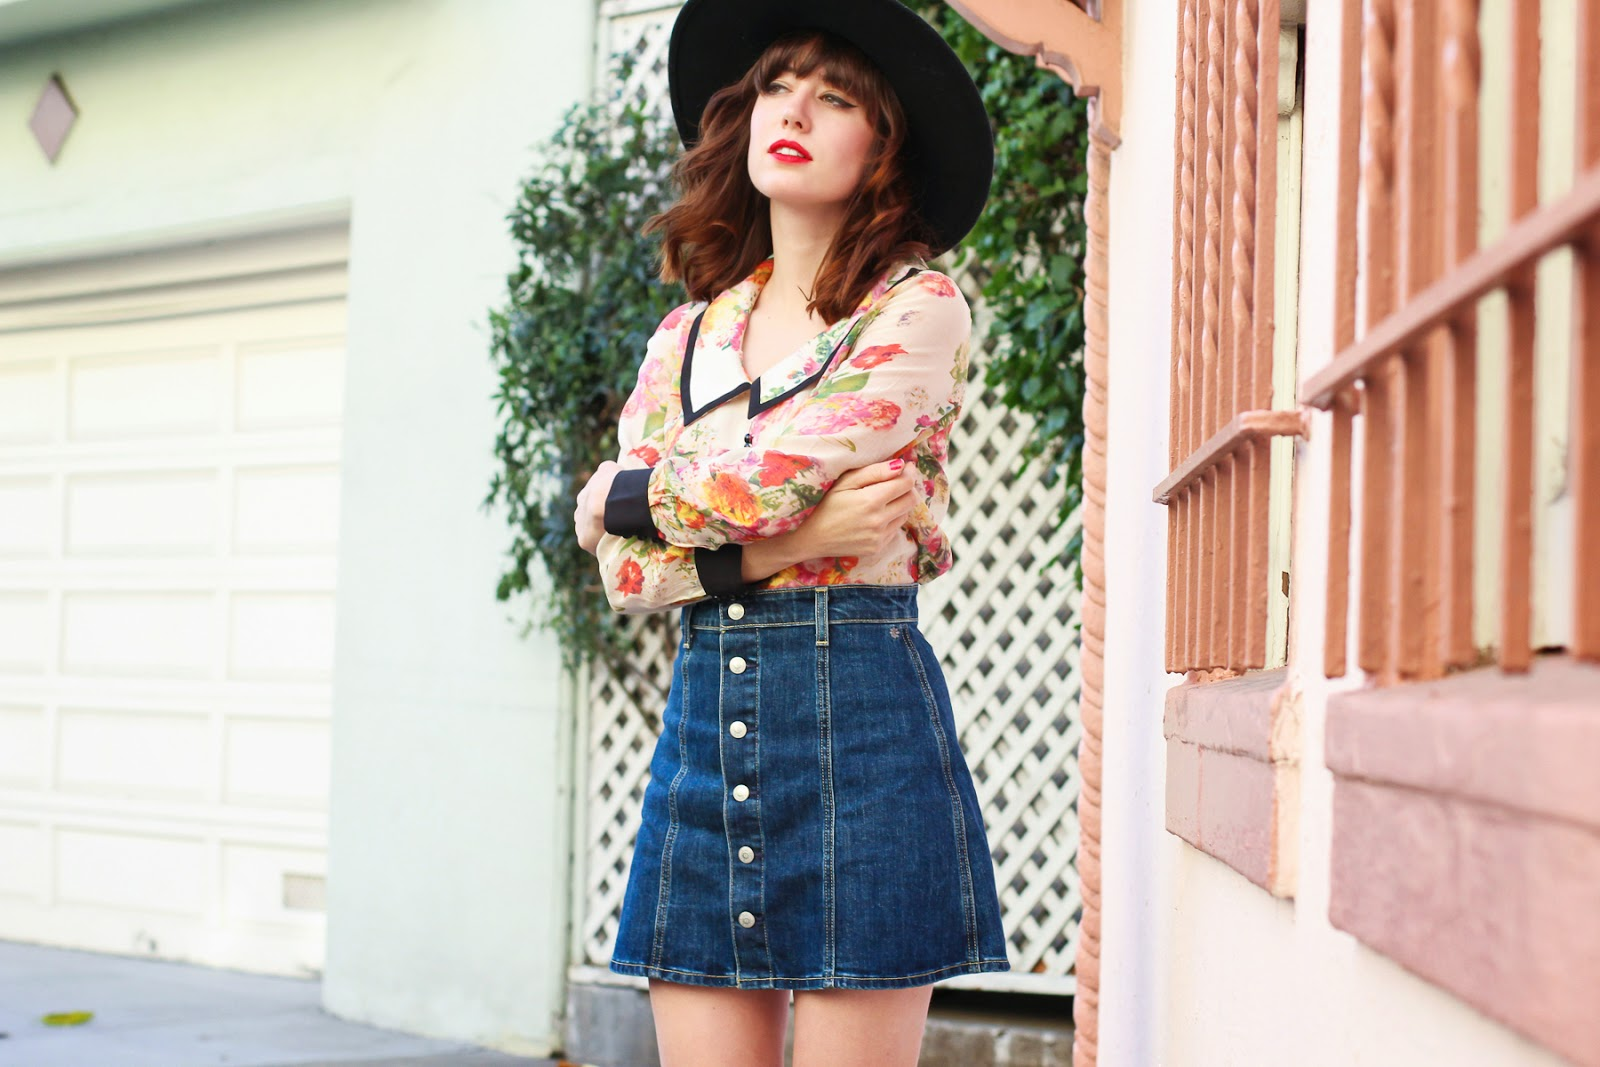 Retromantisch retro romantic fashion blog bangs fringe hat pony A fashion nerd ryan chua